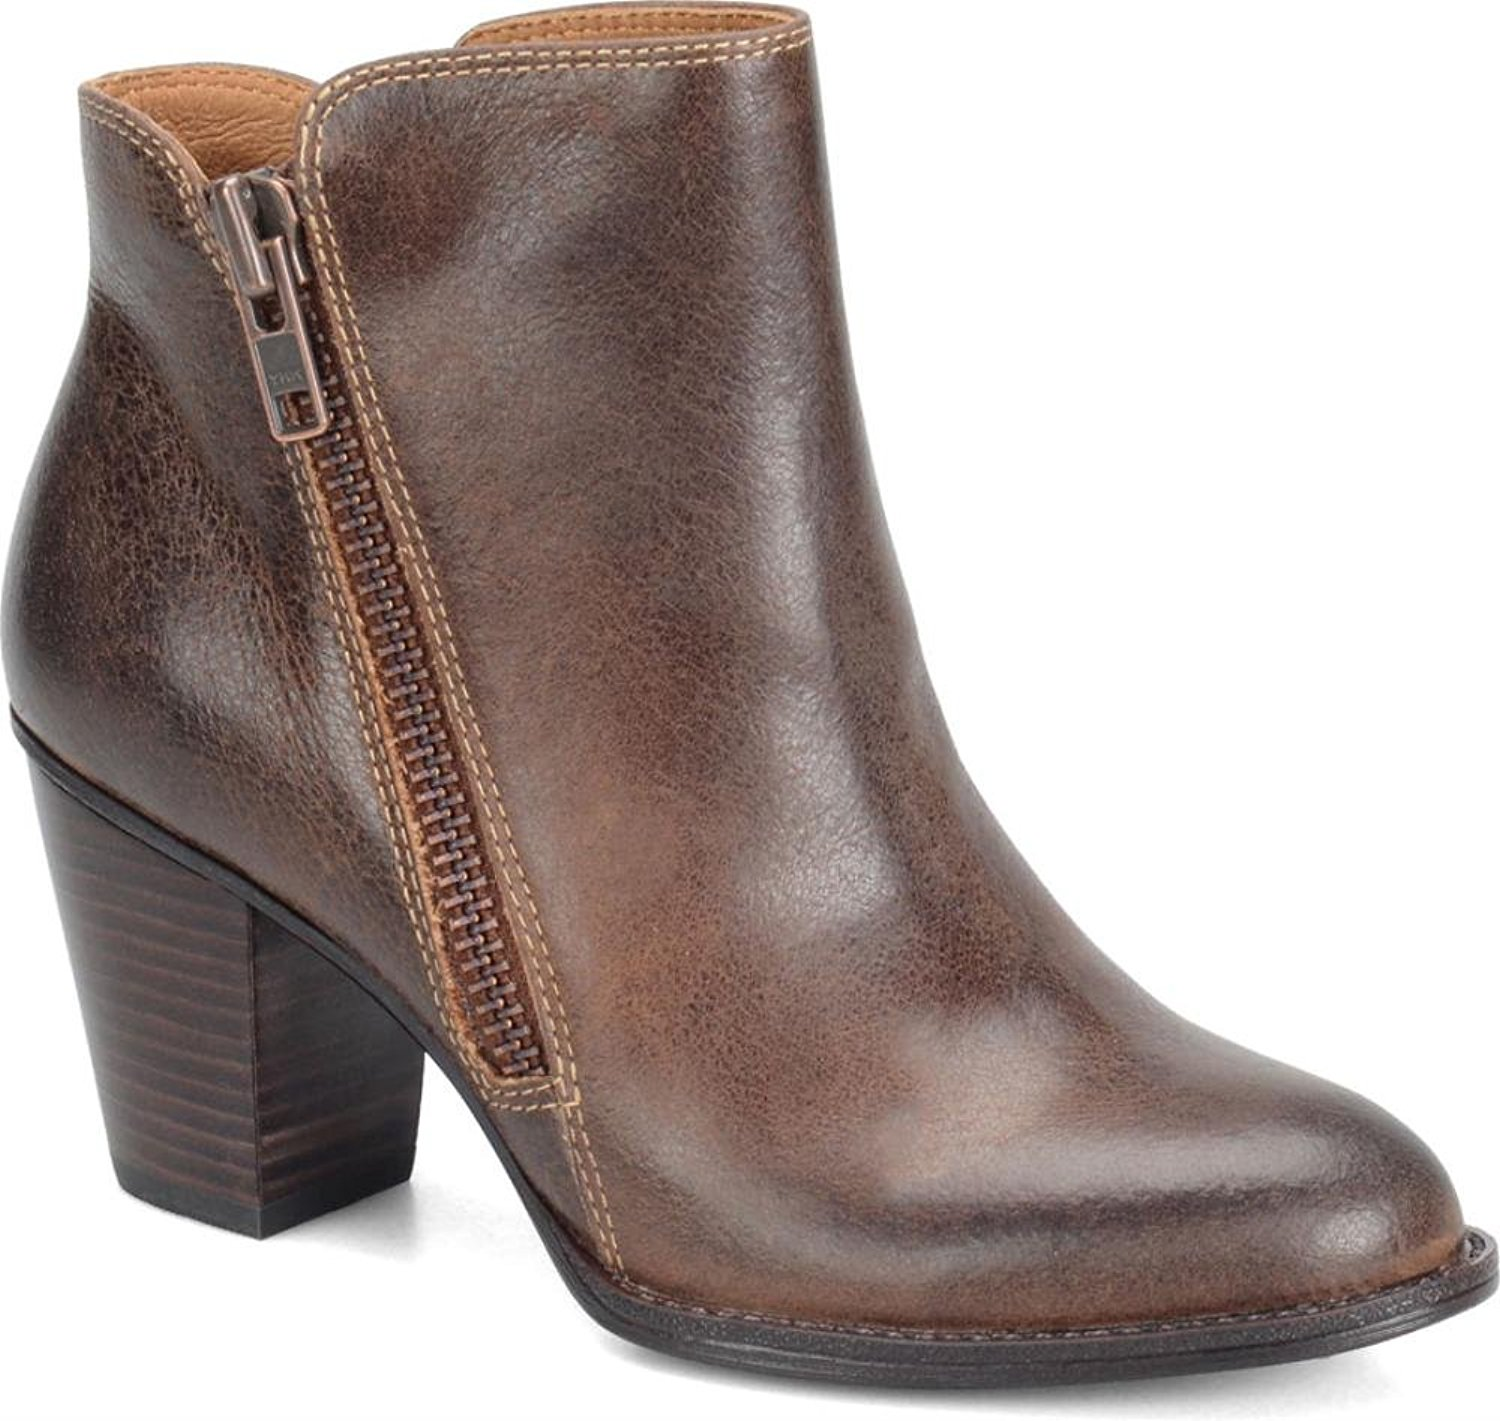 Sofft Wera Women's Ankle Boots by Sofft